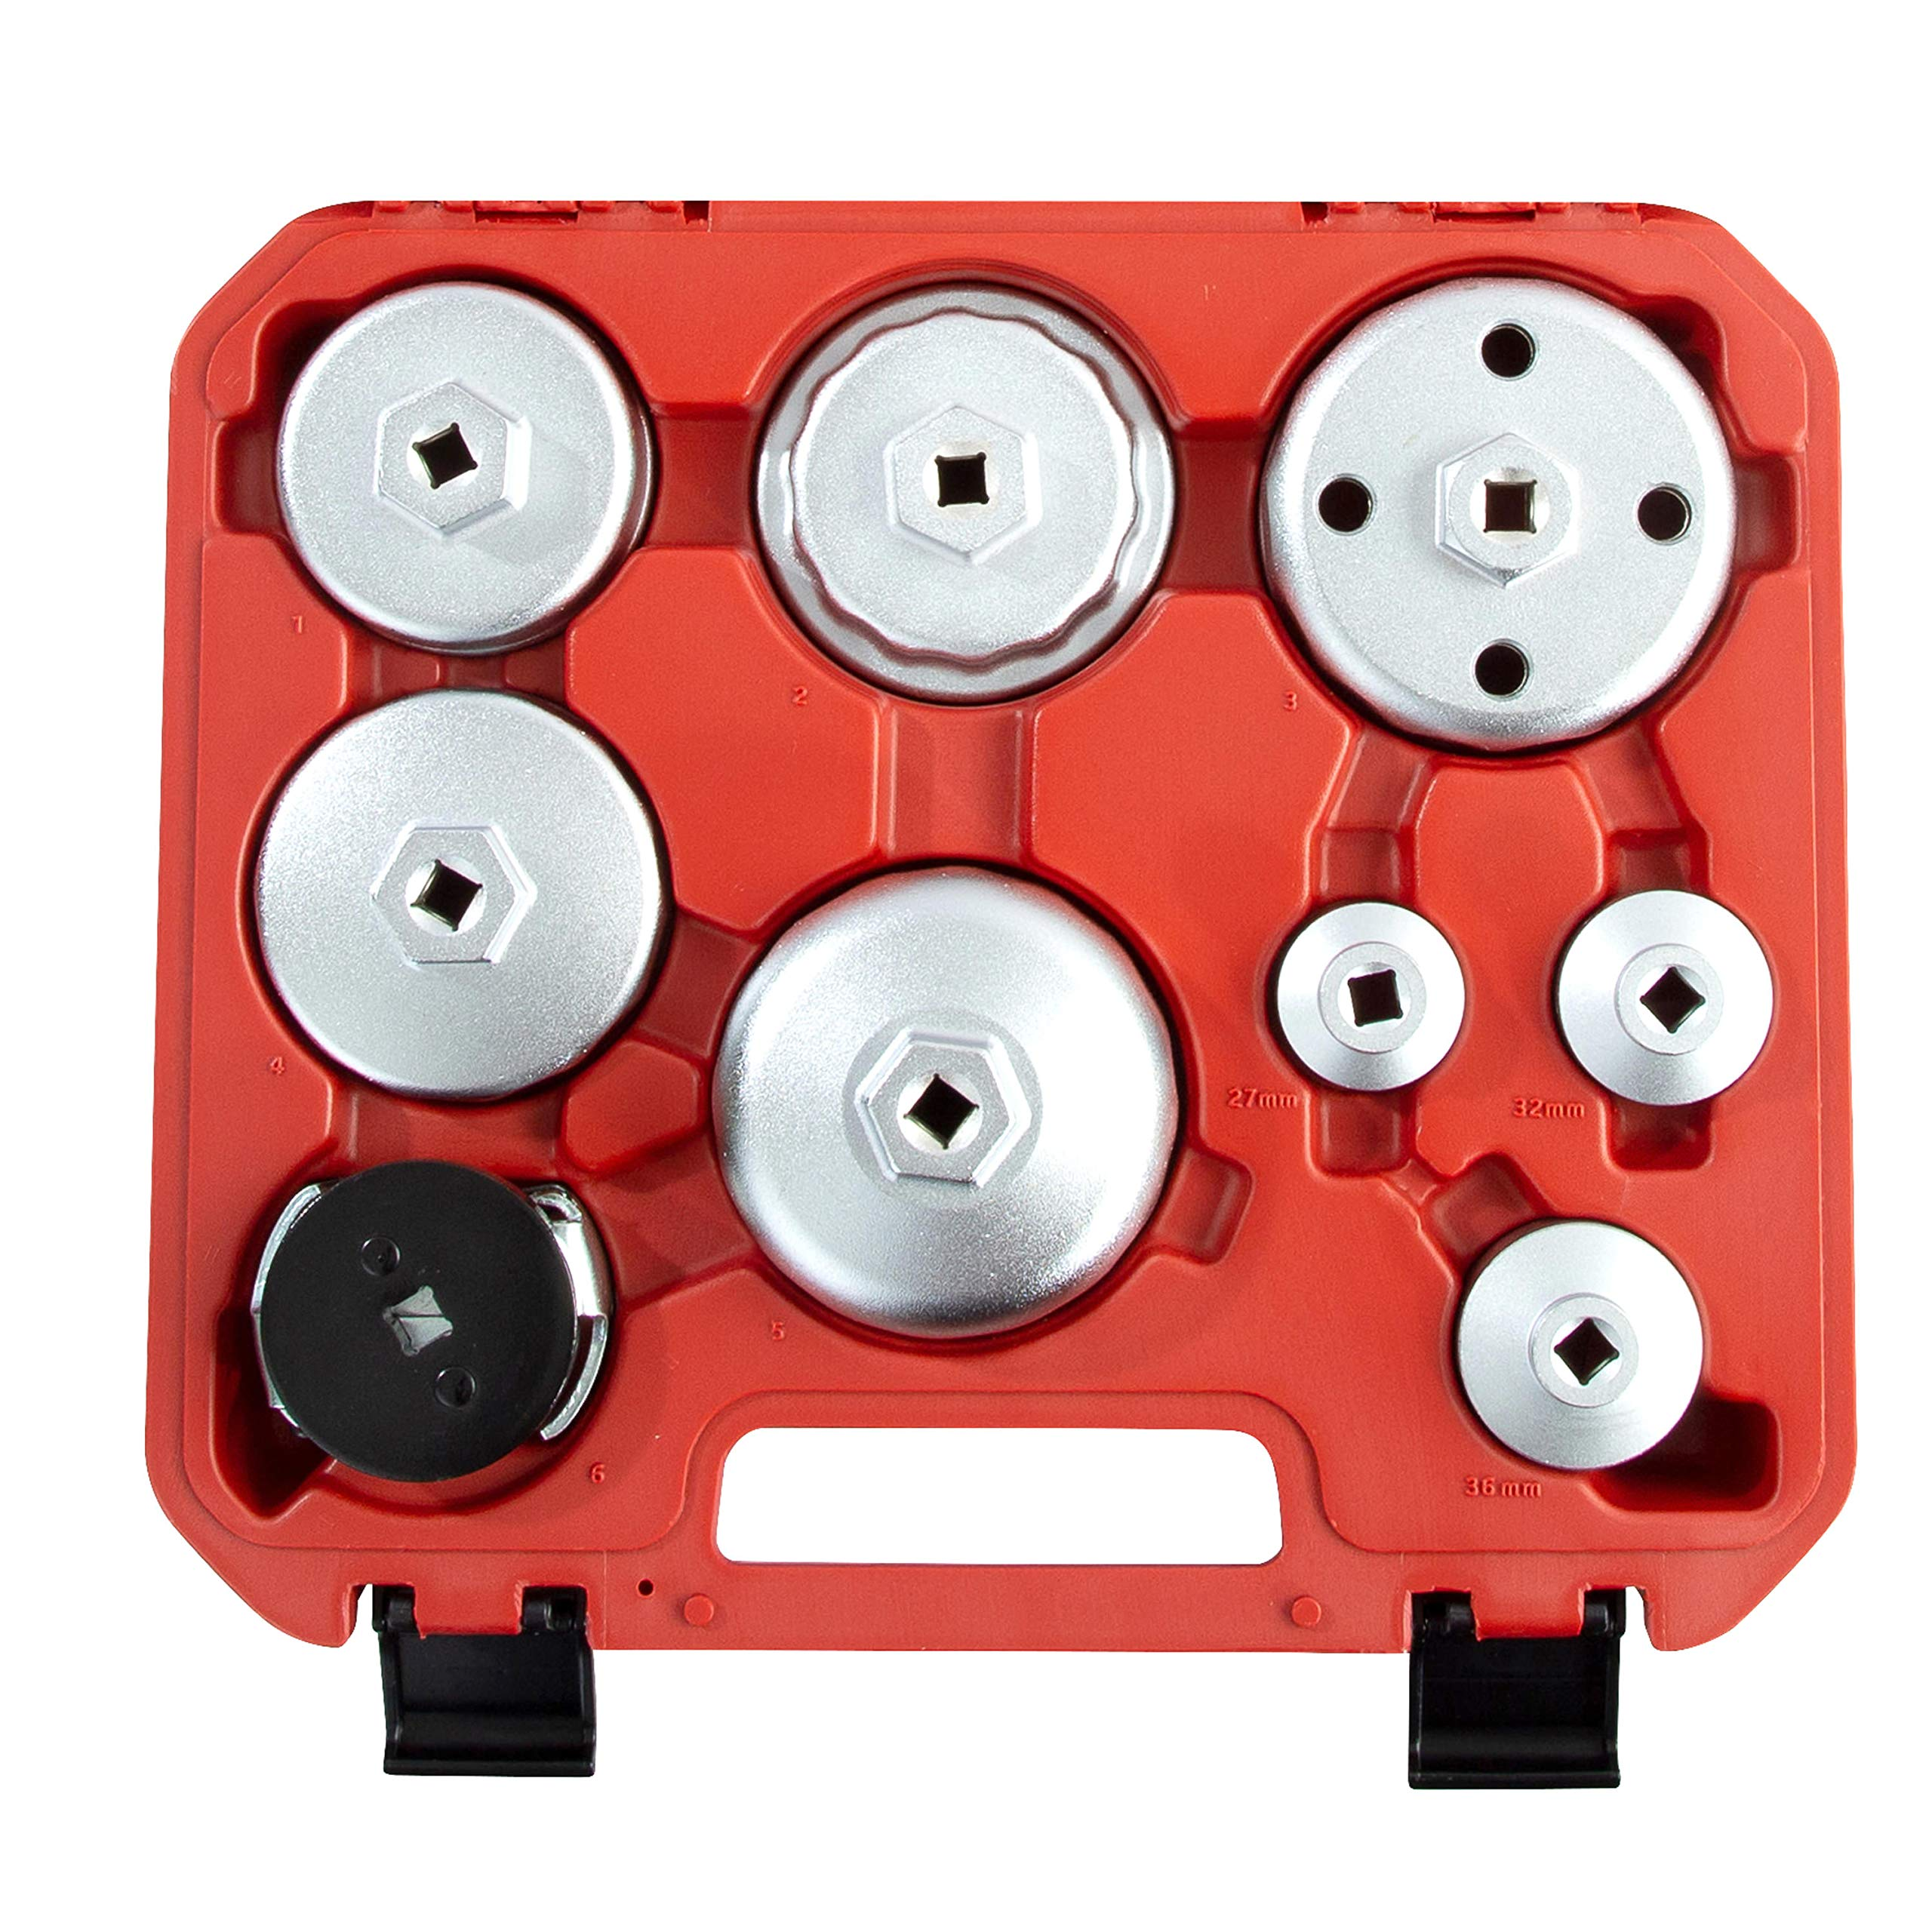 OEMTOOLS 27199 Oil Filter Cap Wrench Set (9 Piece) by OEMTOOLS (Image #2)